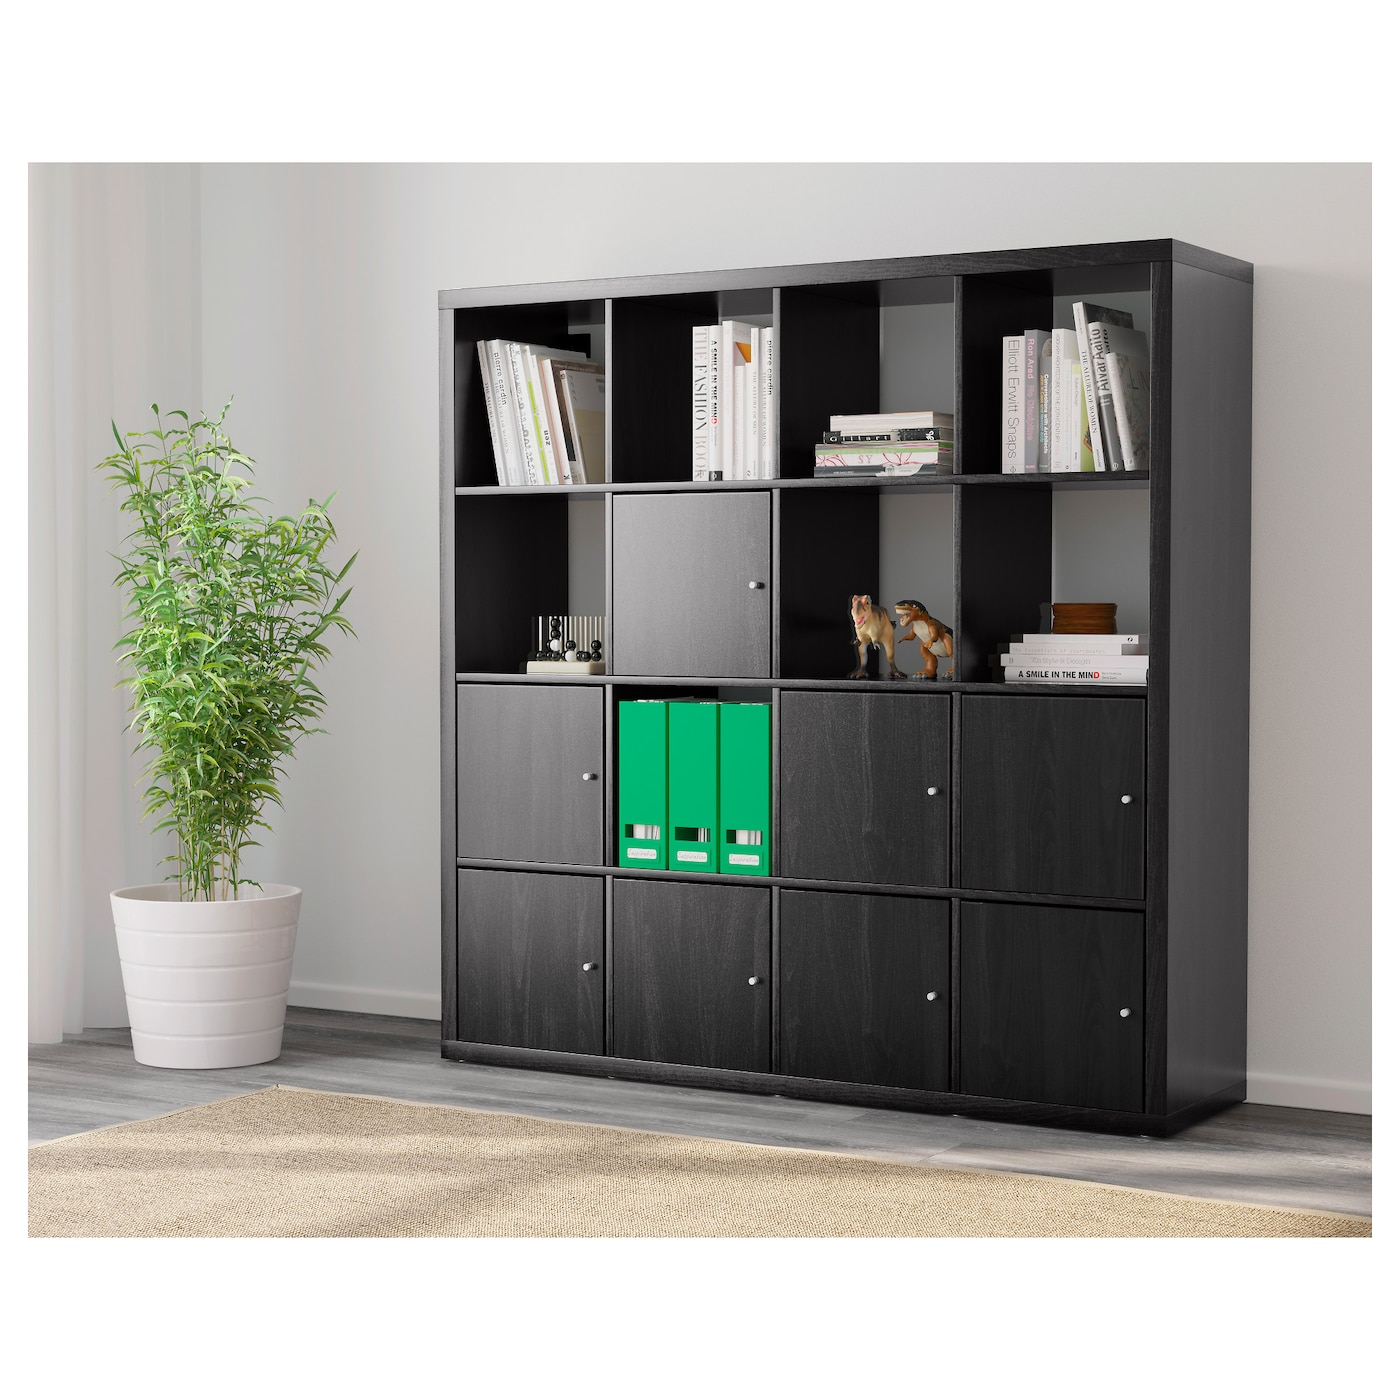 kallax shelving unit with 8 inserts black brown 147 x 147 cm ikea. Black Bedroom Furniture Sets. Home Design Ideas